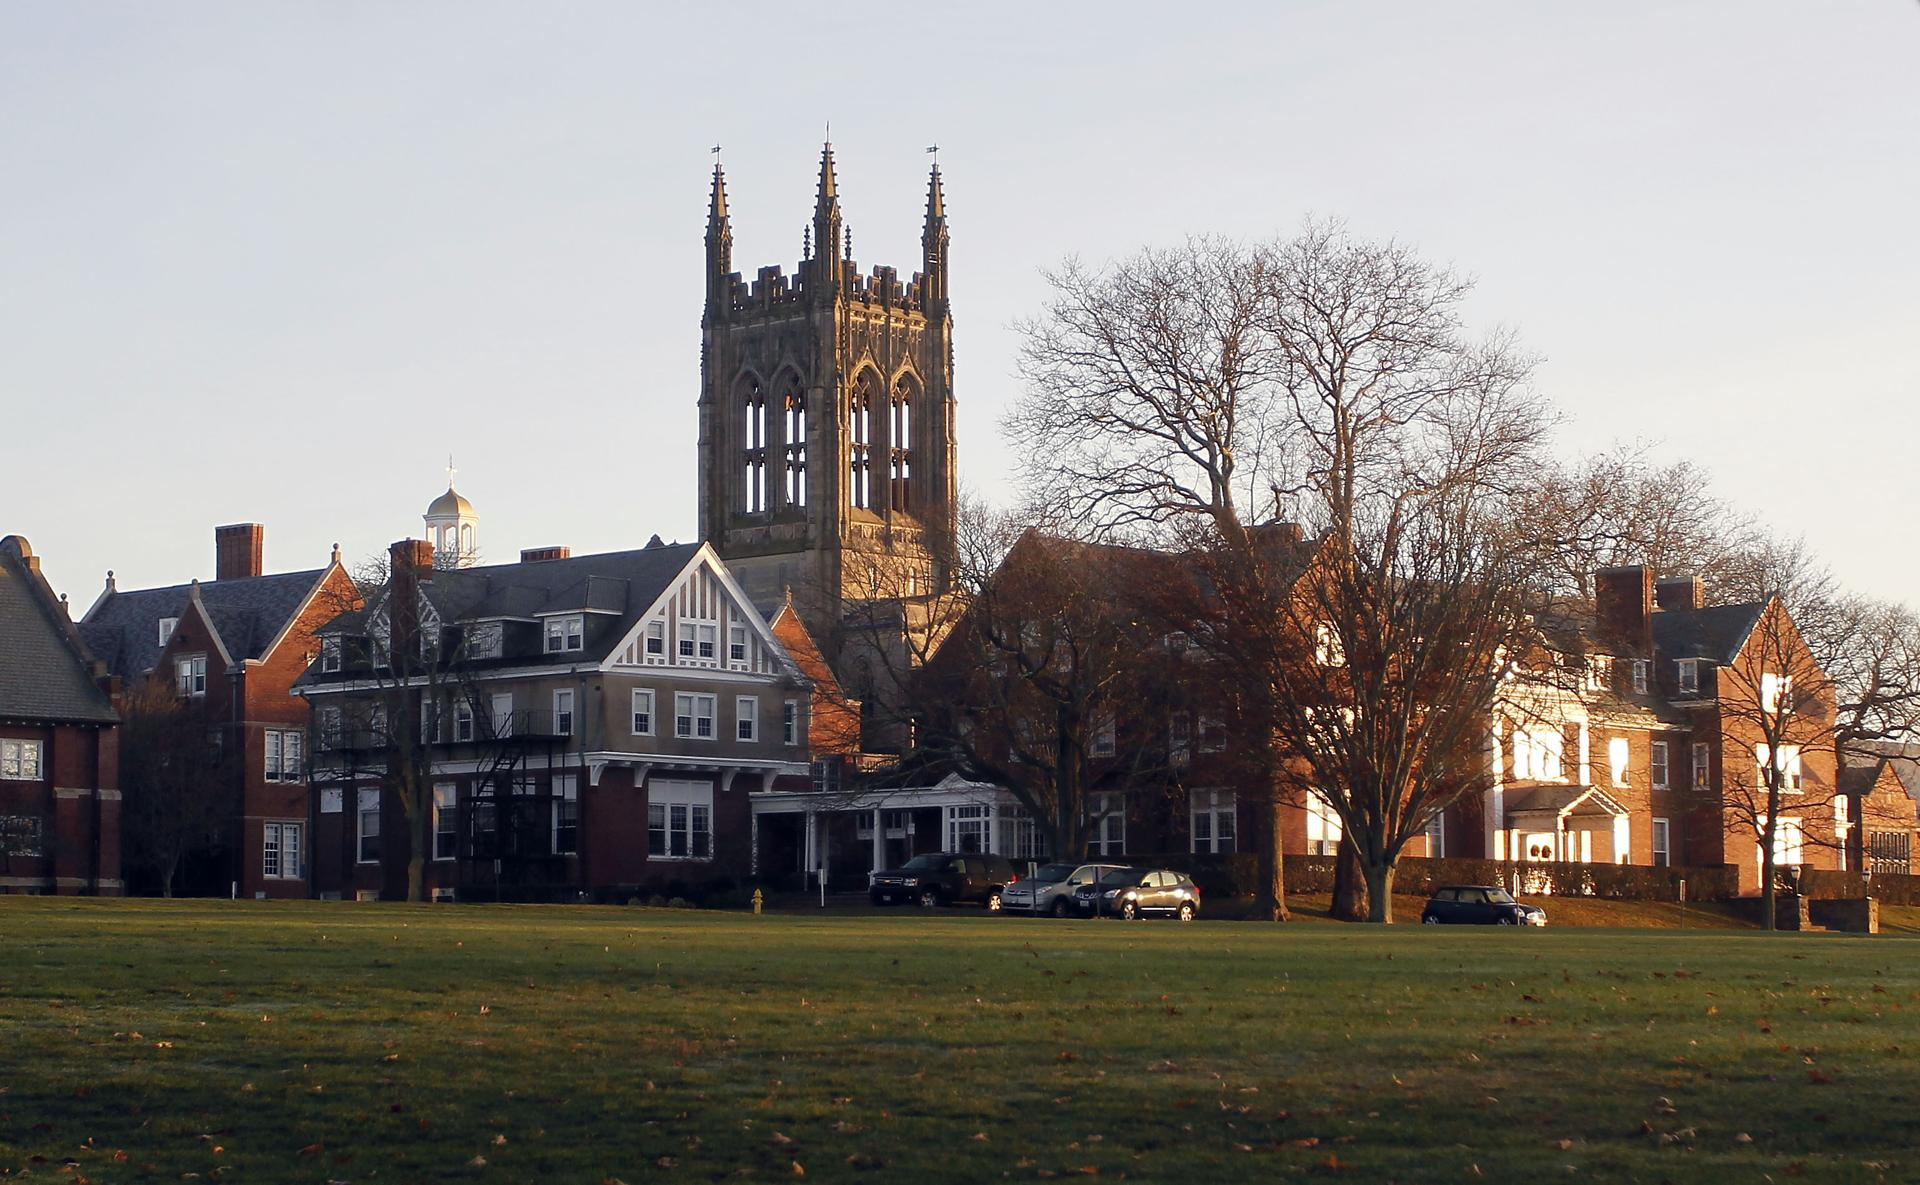 A view of the chapel and old school at St. George's School in Middletown, R.I.